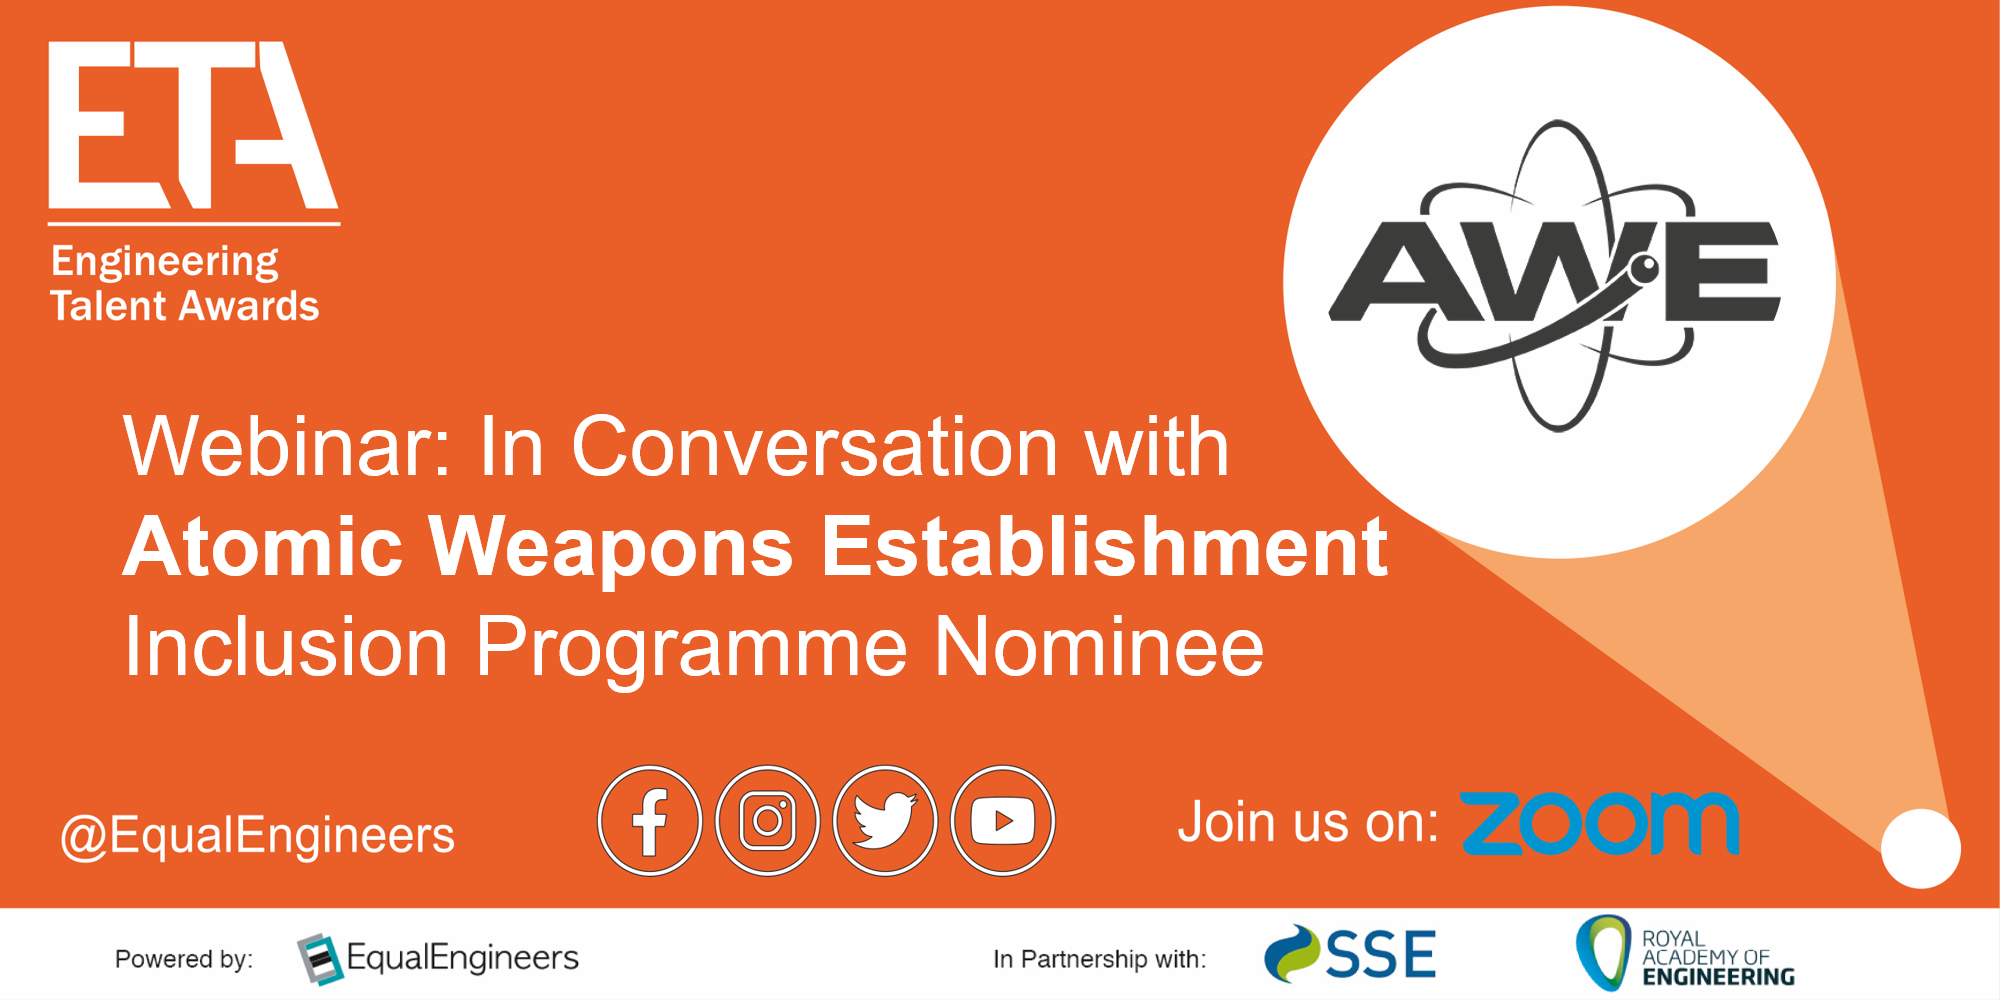 inclusion-programme-nominee-atomic-weapons-establishment